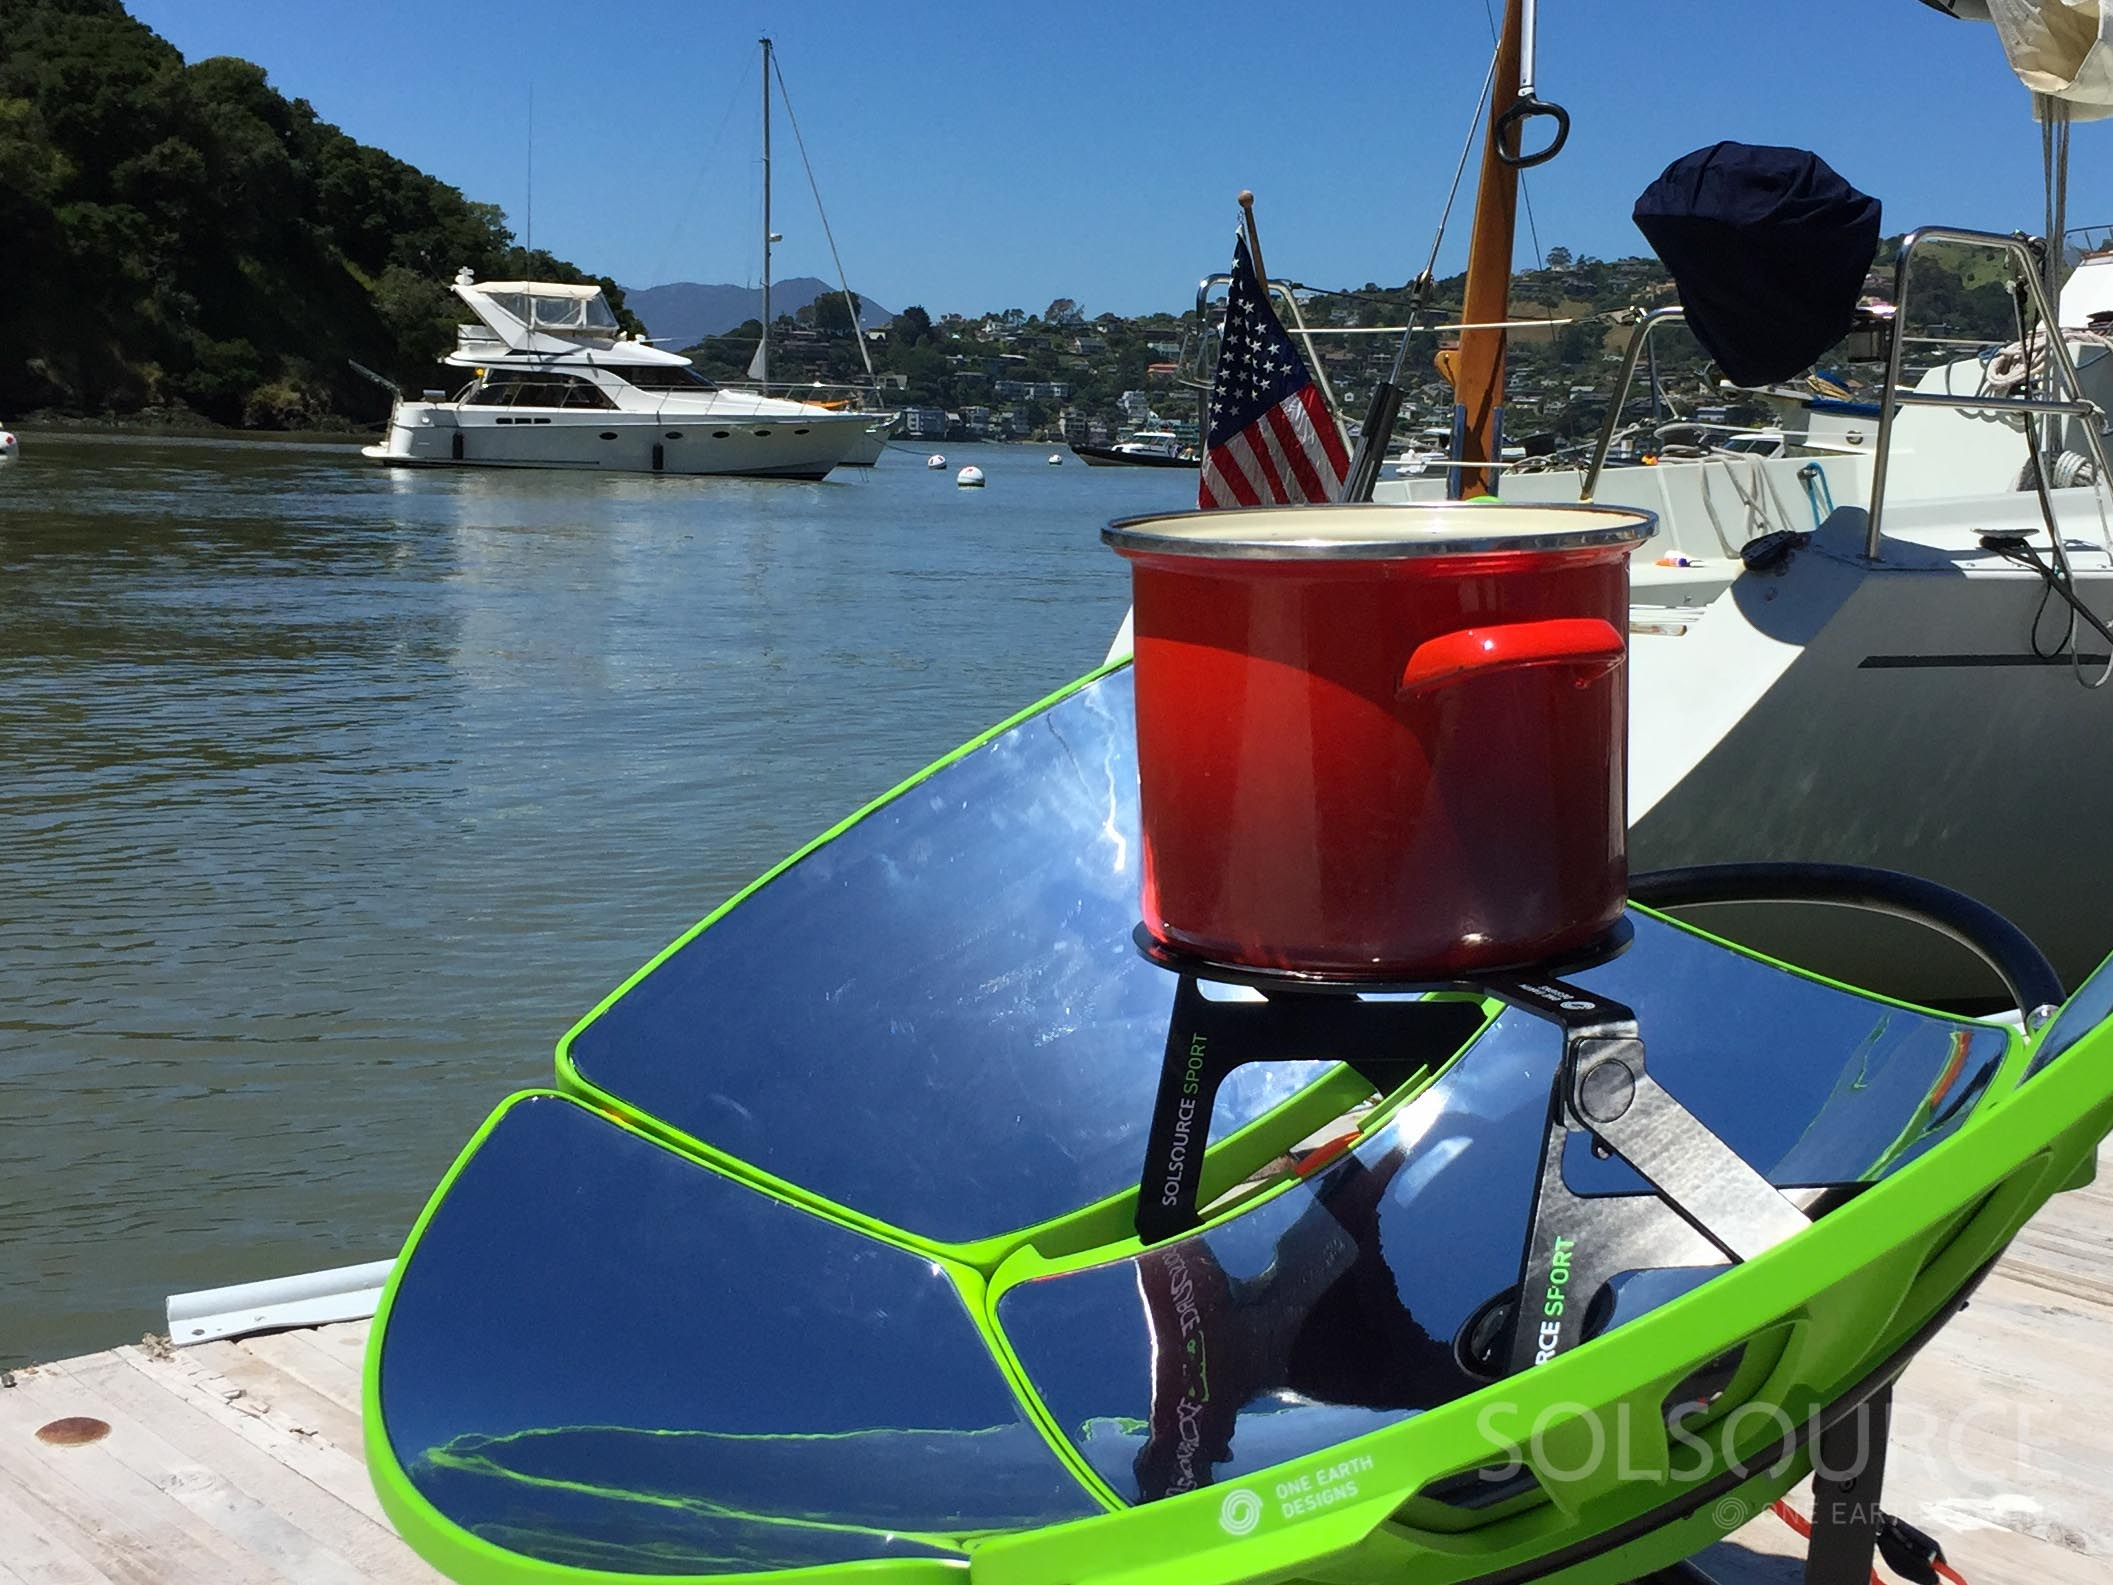 SolSource Sport Yachting